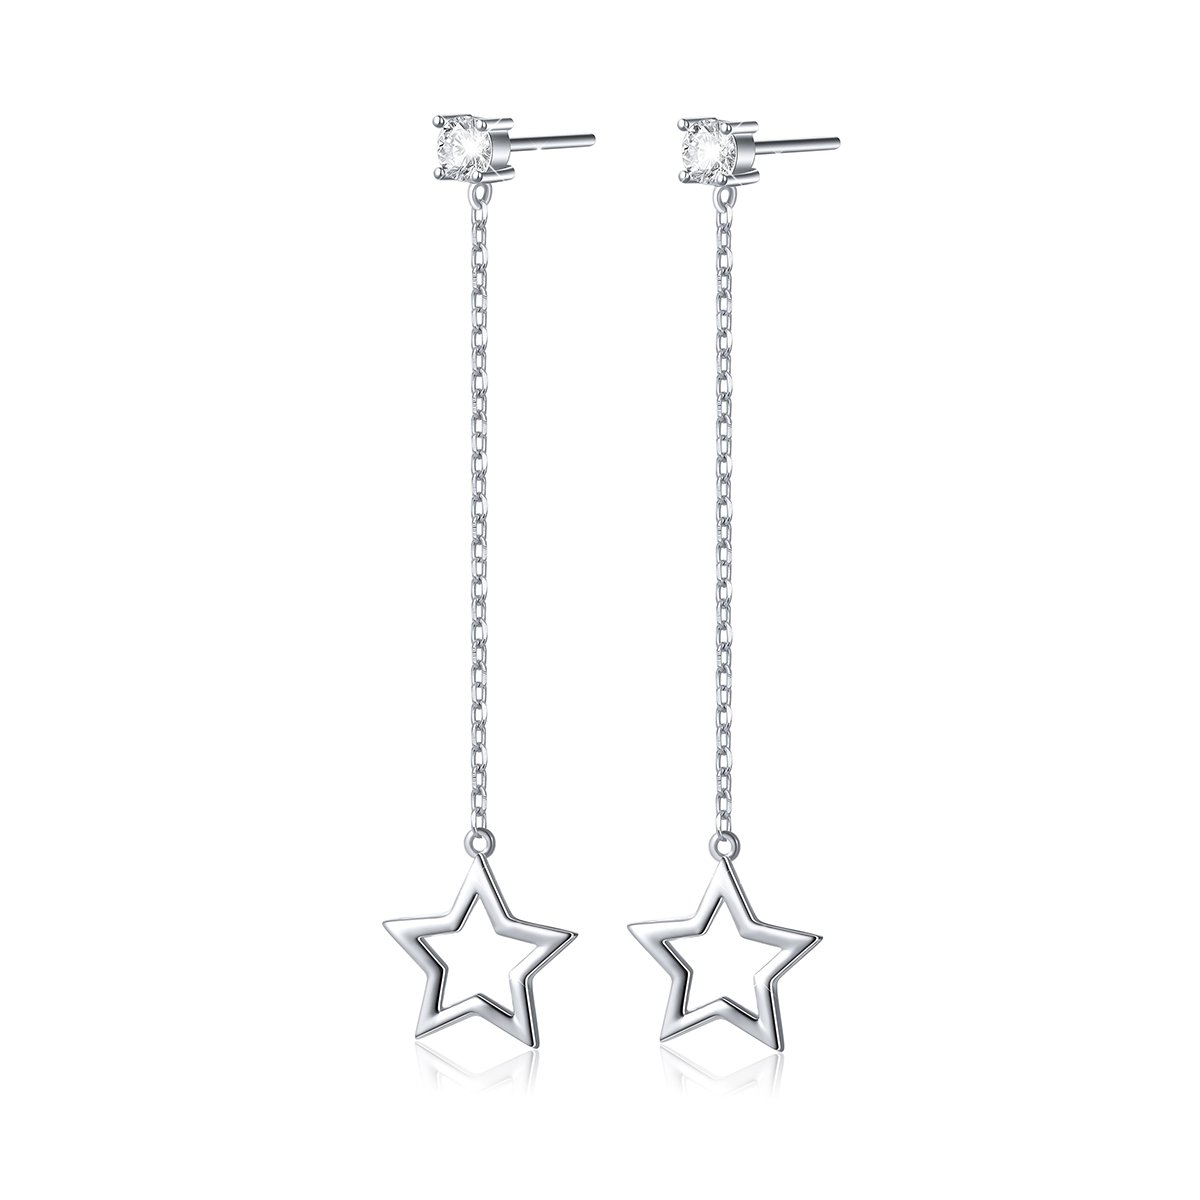 bb68a951c Amazon.com: S925 Sterling Silver Elegant Star Earrings Cubic Zirconia Dangle  Earrings: Jewelry